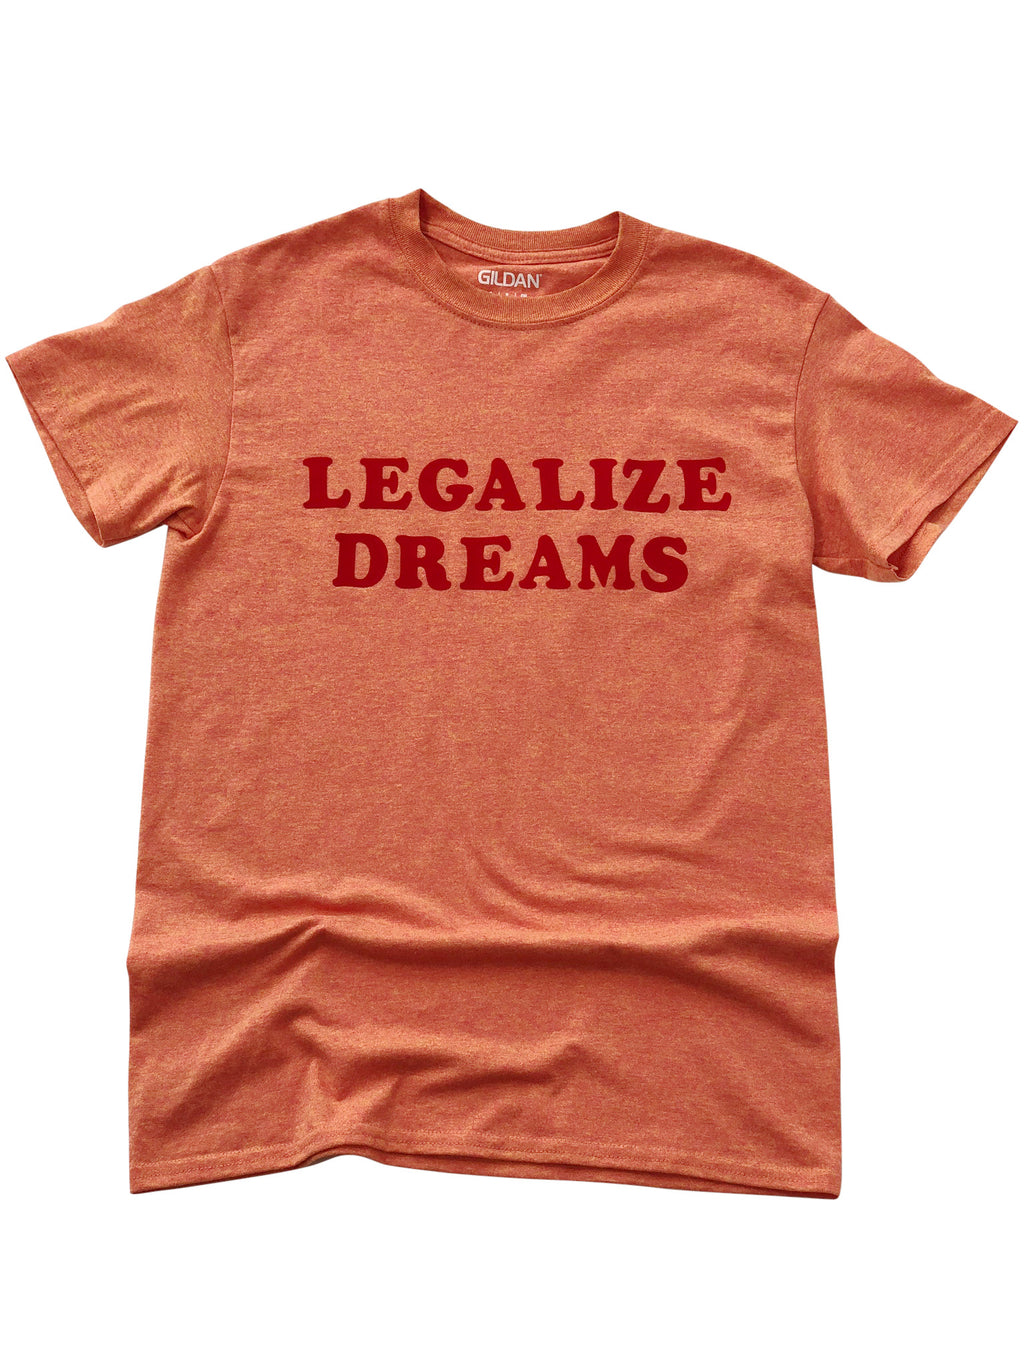 Legalize Dreams Shirt in Light Orange - Trunk Series